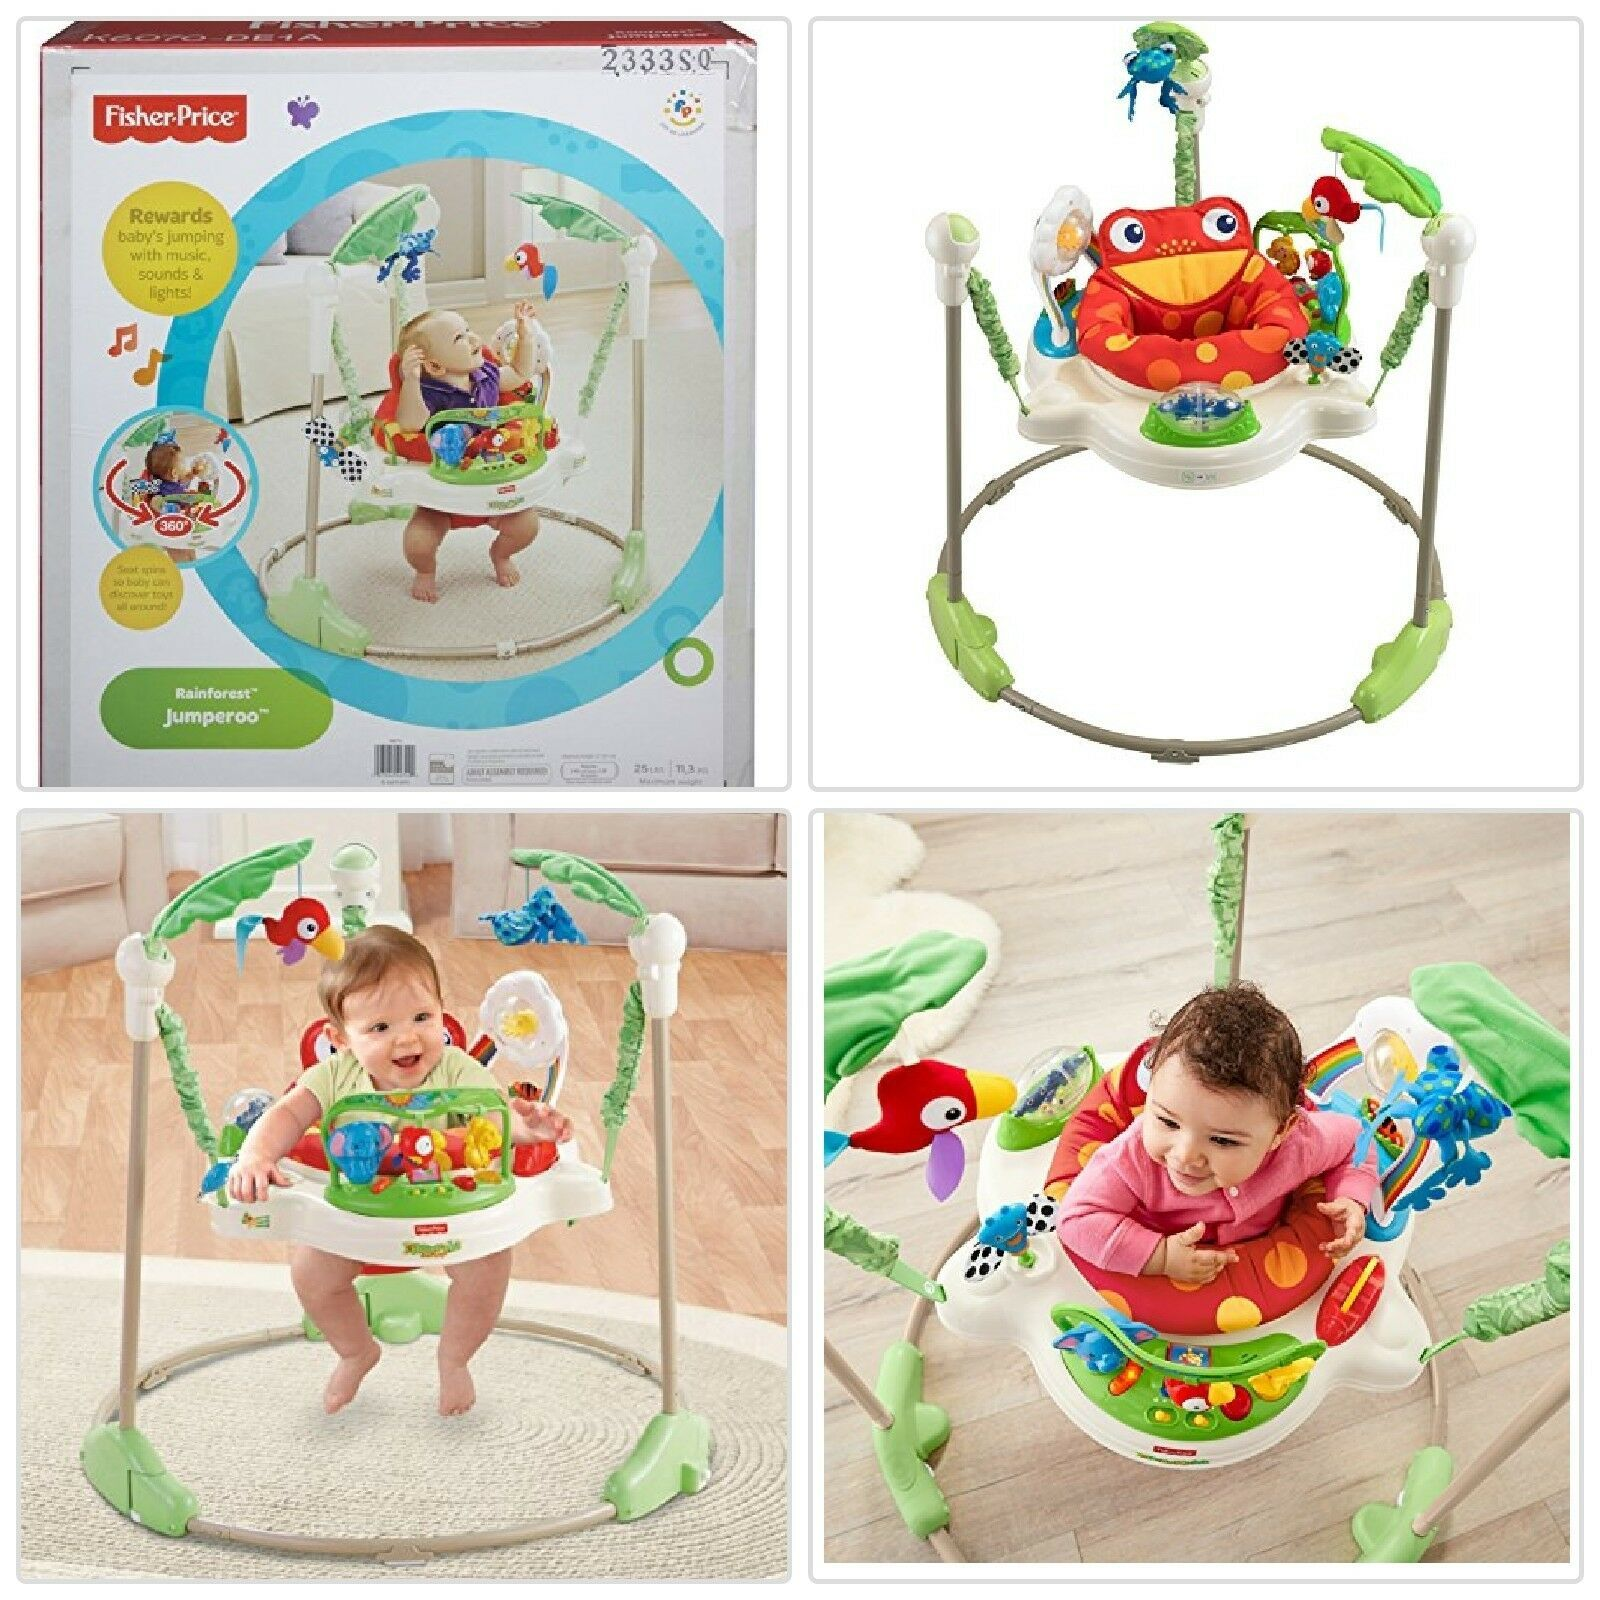 New Fisher Price Rainforest Jumperoo Baby Jumping Exercisers Toddlers Bouncer Baby Activity Jumper Fisher Price Rainforest Jumperoo Activity Jumper